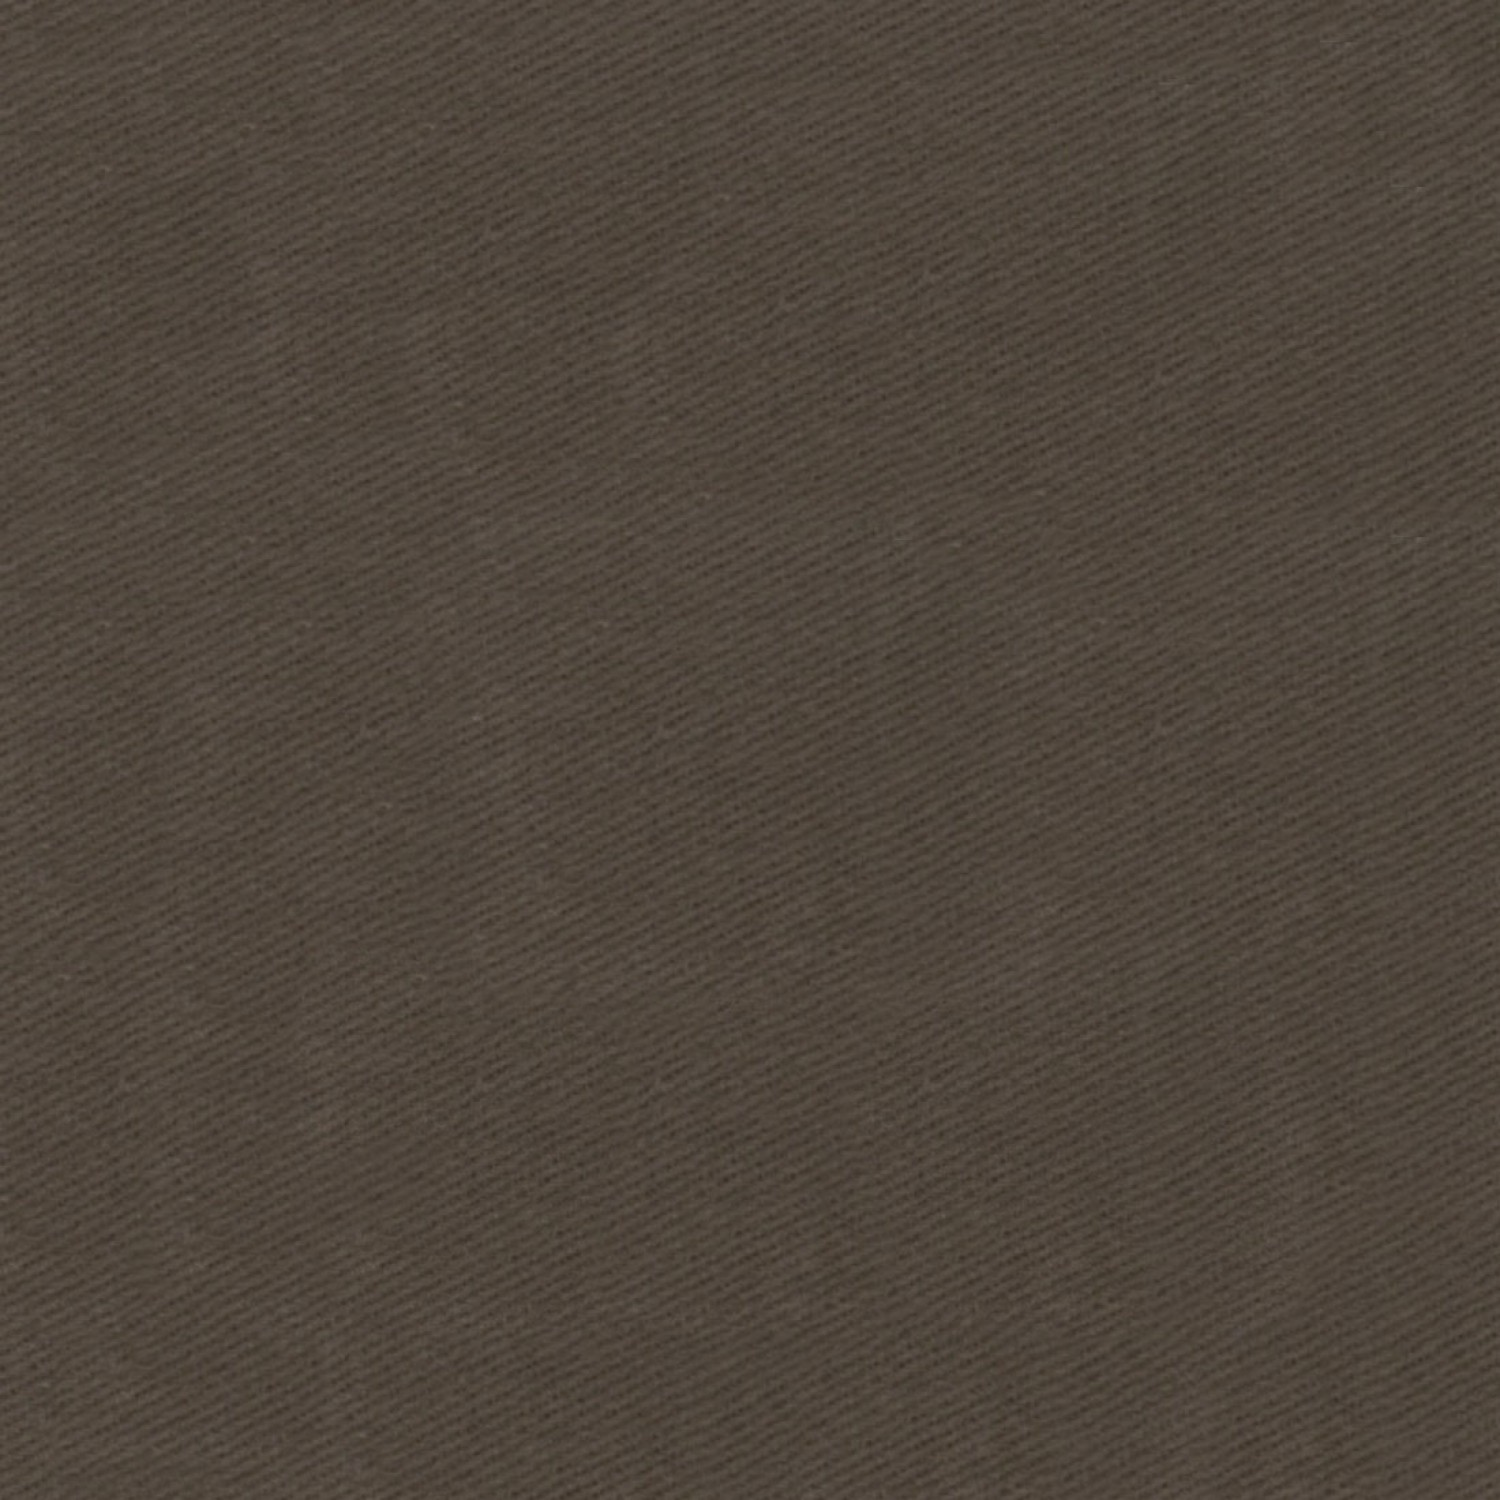 "Milestone Twill Earth Brown Fabric 7oz - 60"" Wide x Per Yard"